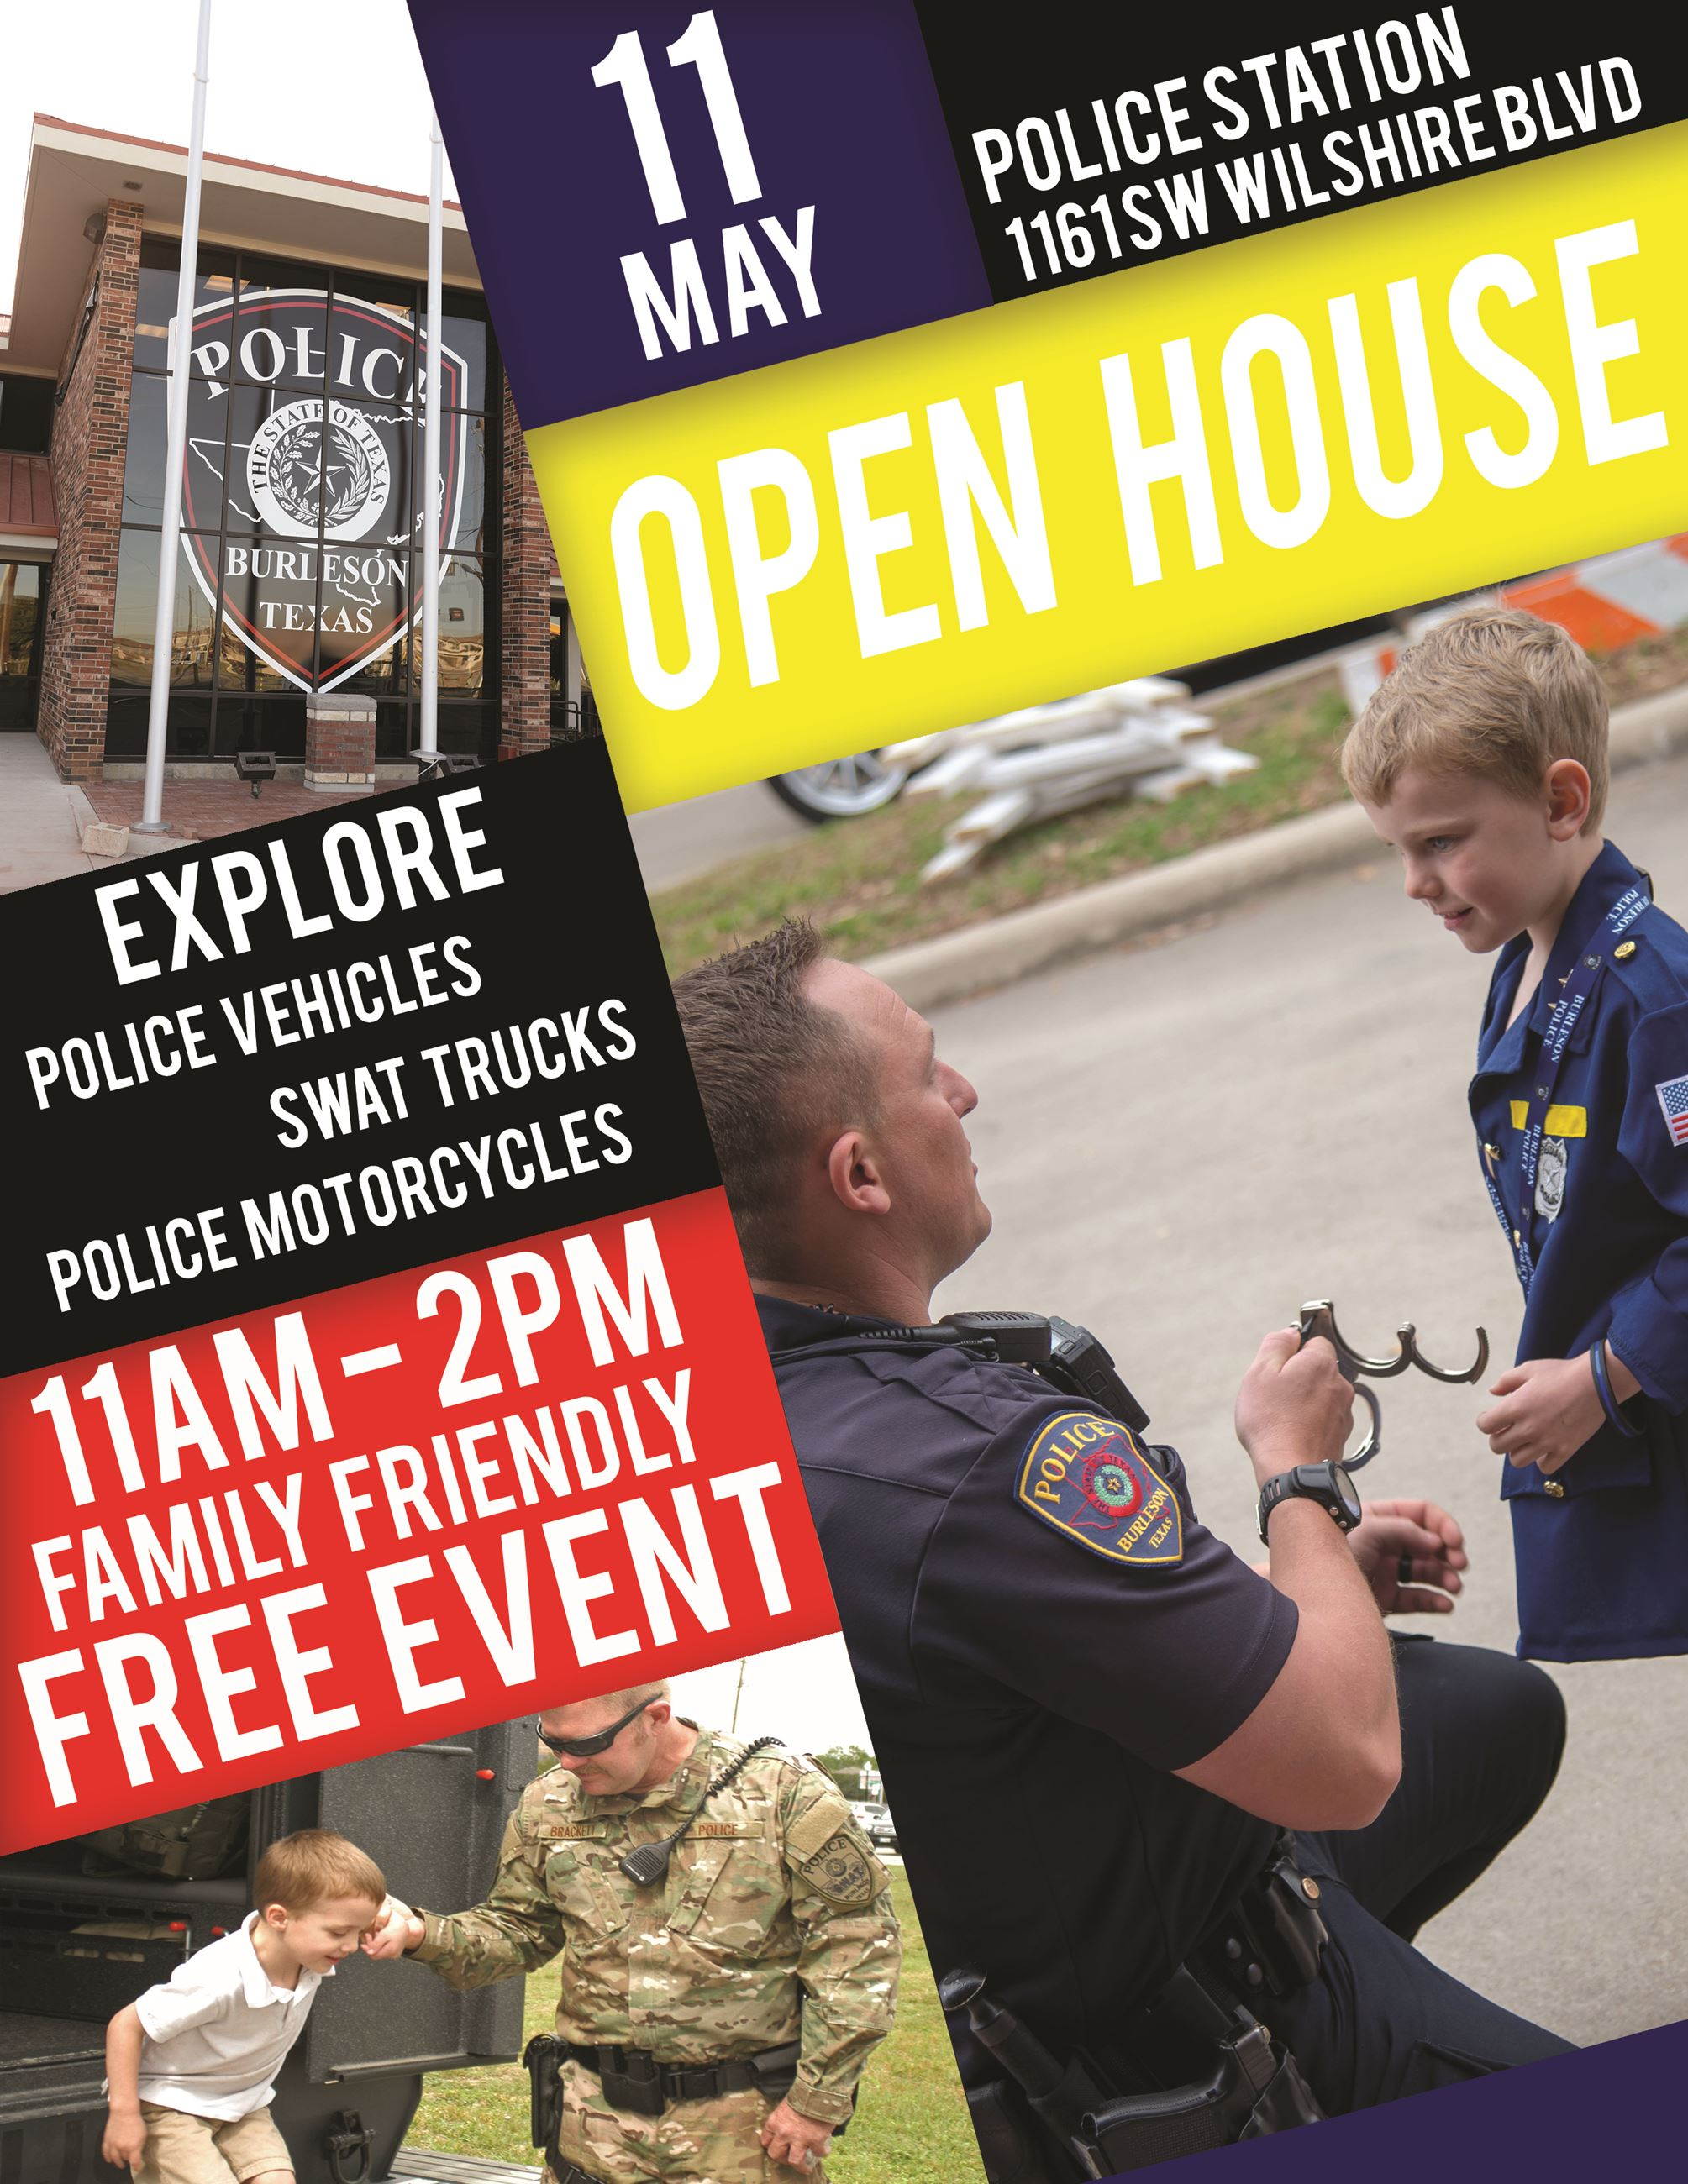 2019 Open House Flyer - Police